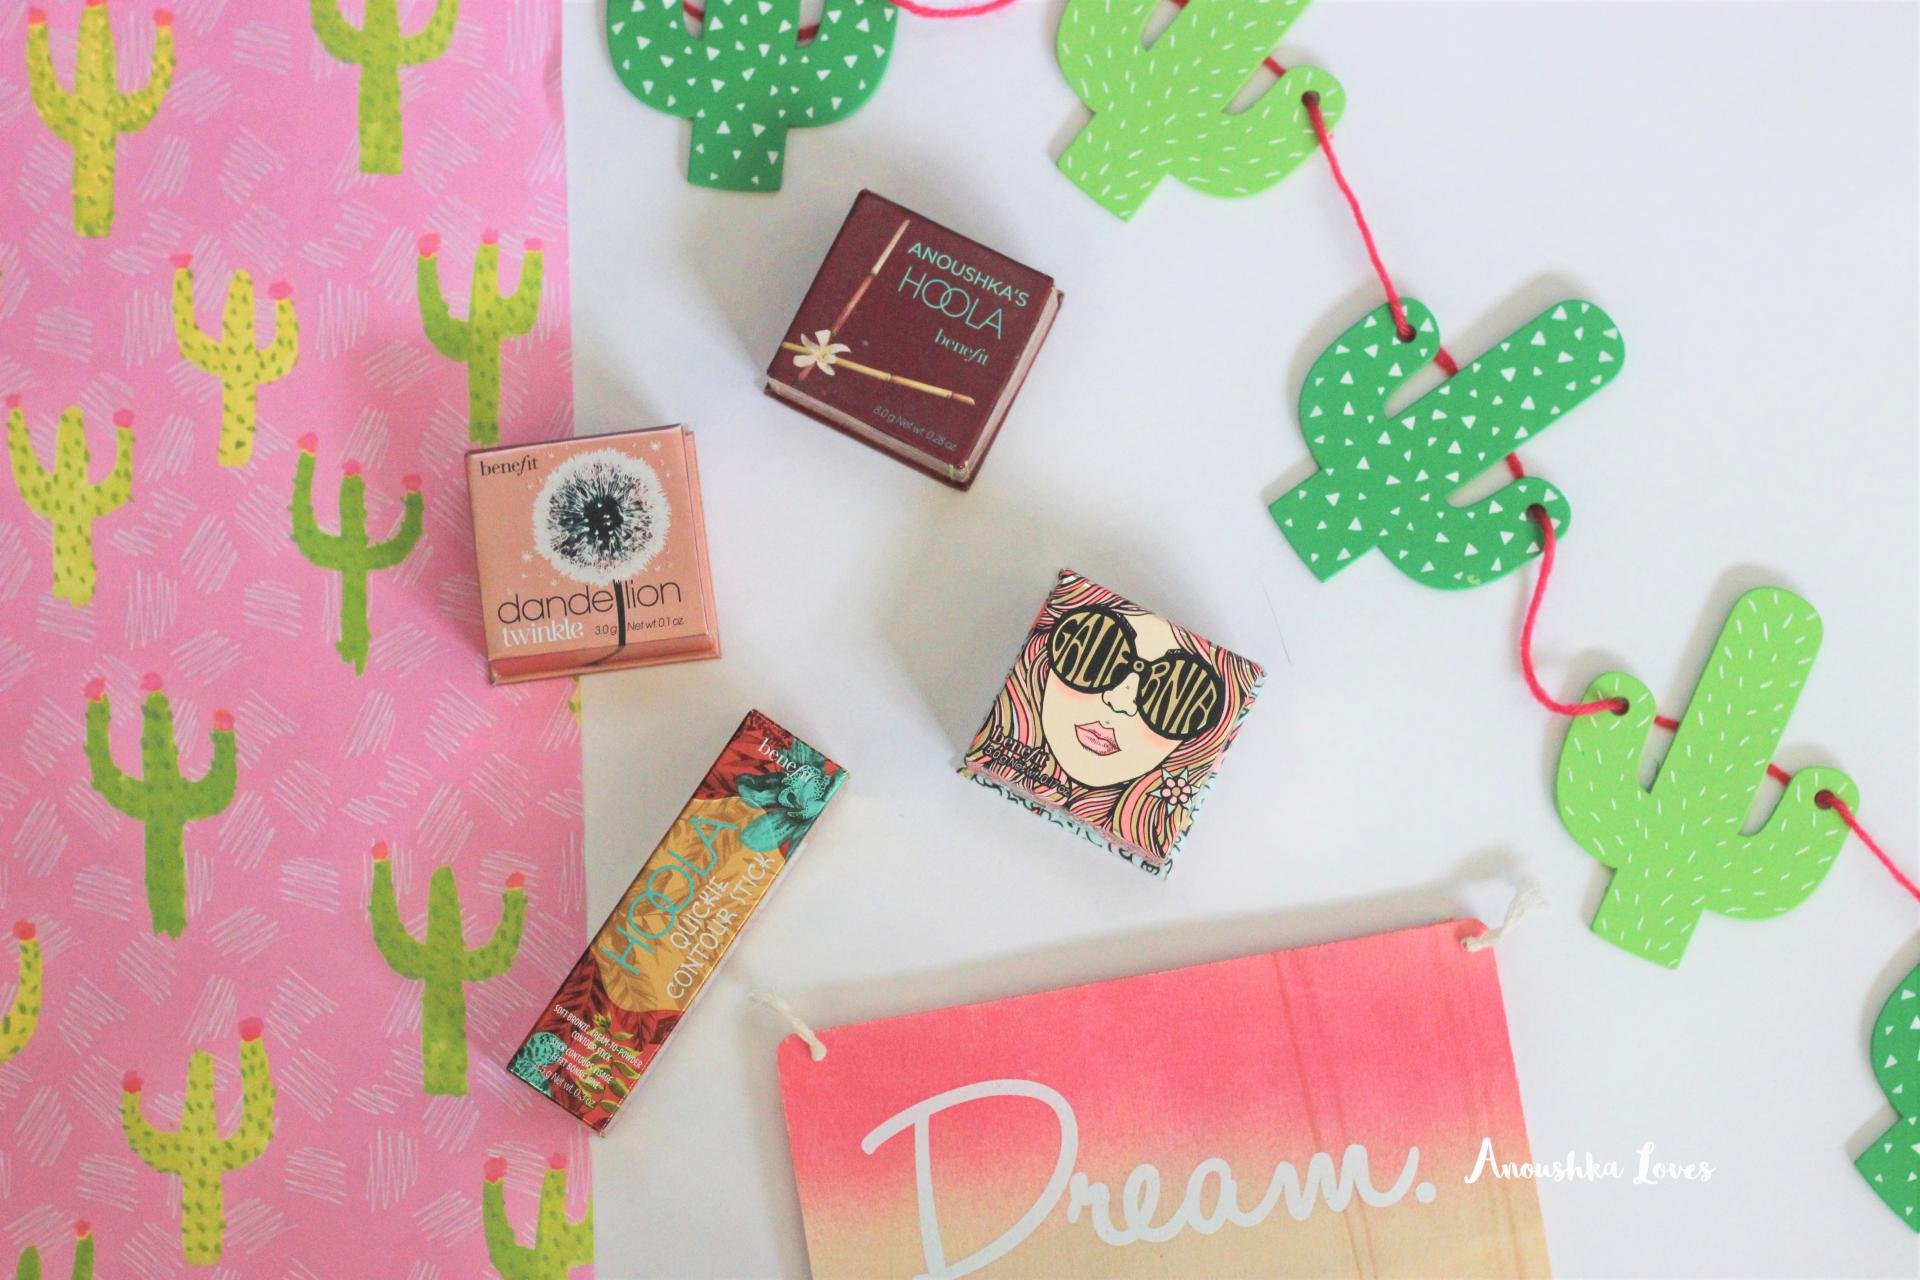 The Summer Face with Benefit Cosmetics Hoola Dandelion Twinkle Galifornia